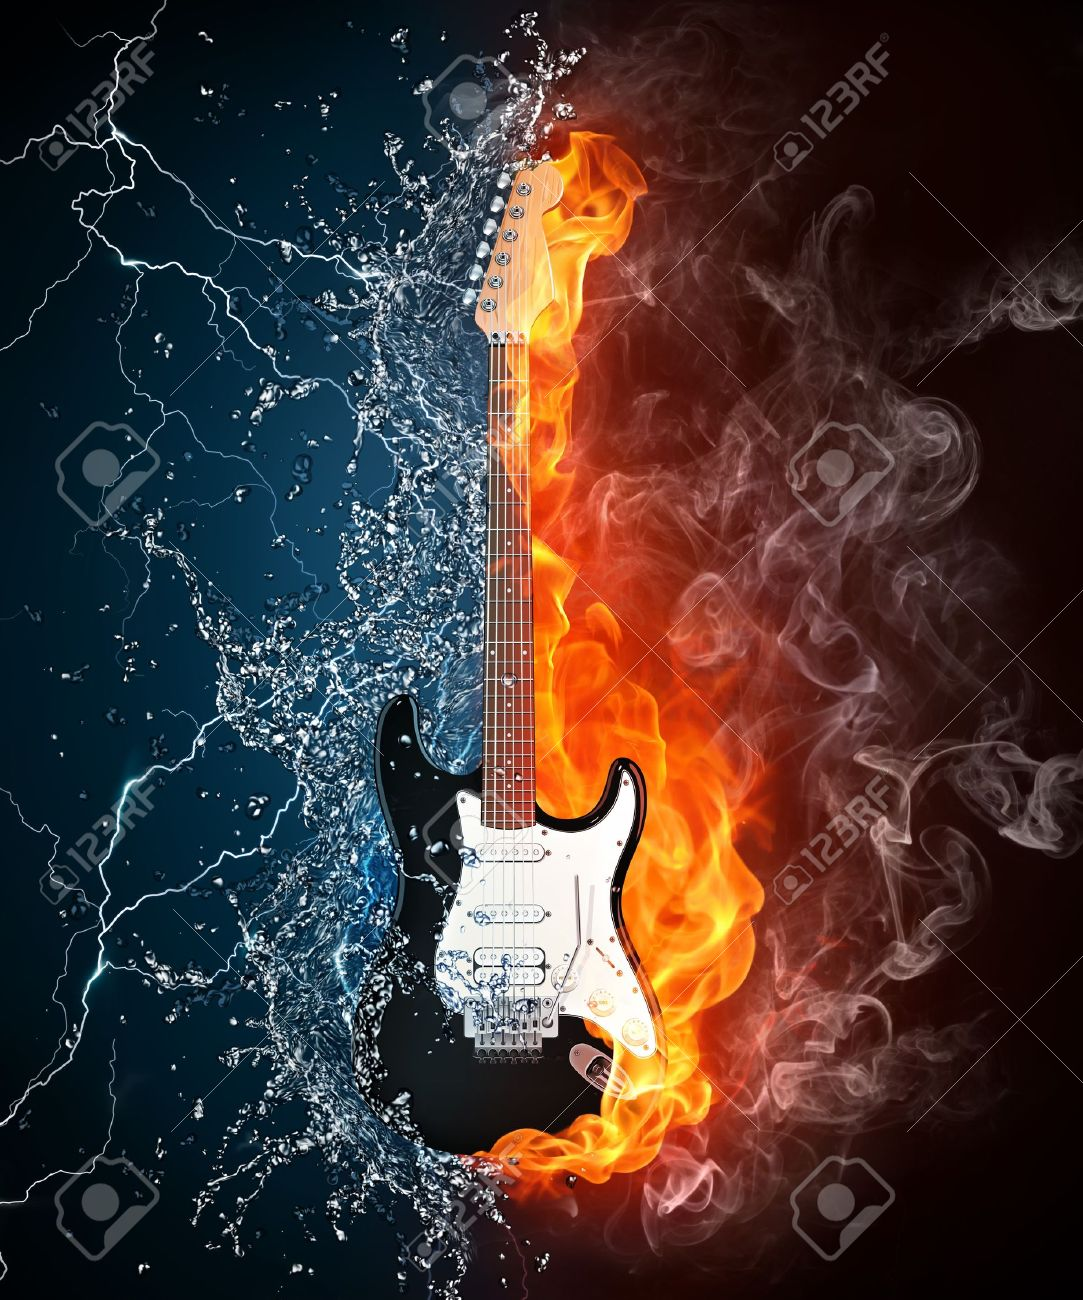 Black Electric Guitar With Flames Electric Guitar on Fire and